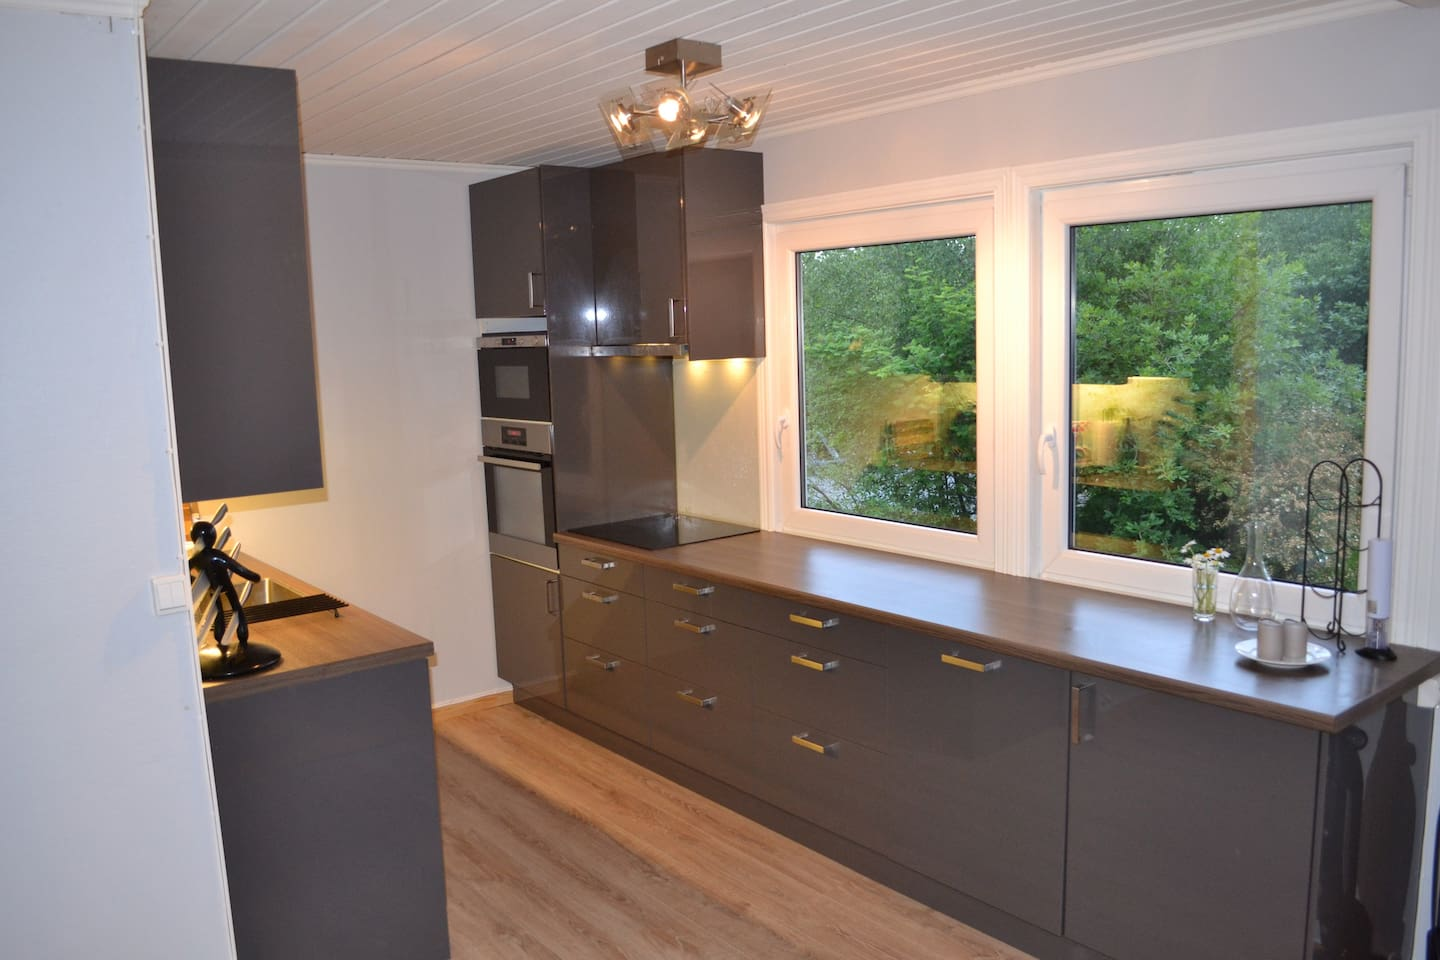 Flott nyoppusset kjøkken med alt av hvitevarer  New kitchen with all you need to make yourself a nice meal